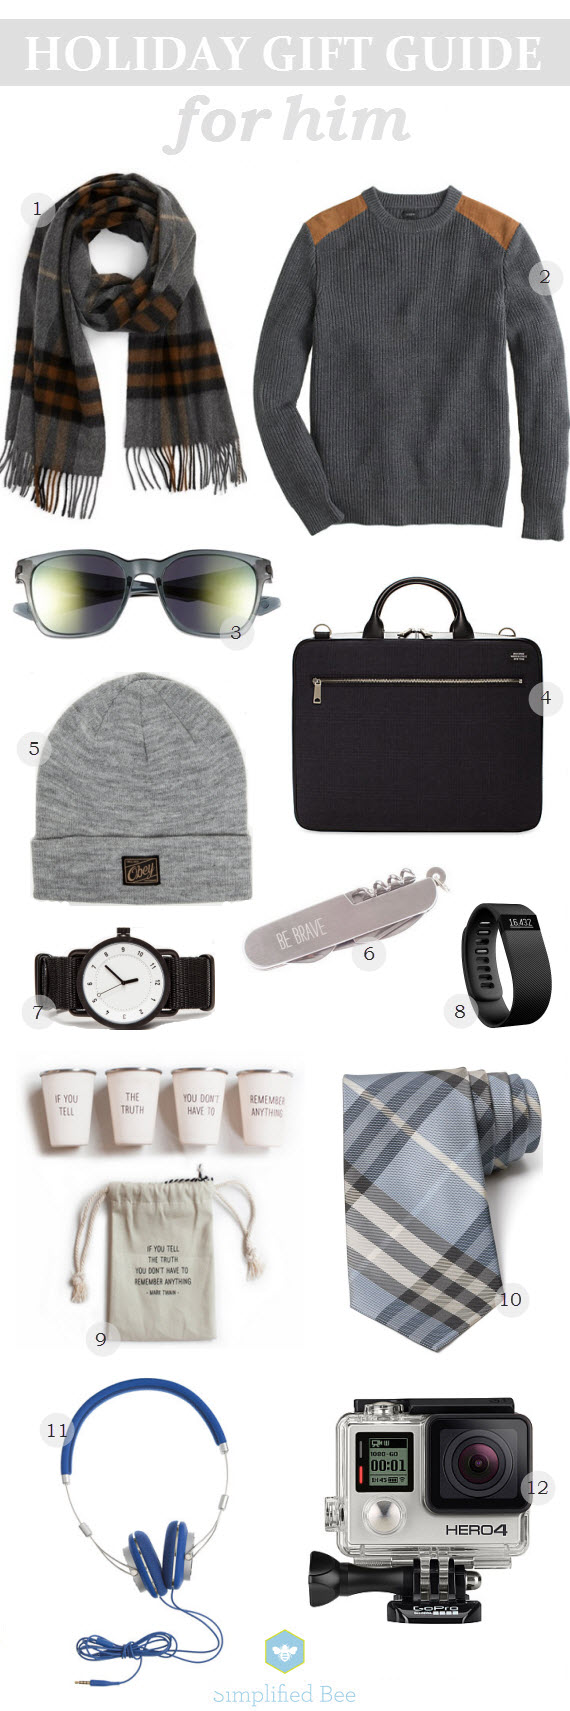 holiday gift guide 2014 // for him // simplified bee #holiday #gifts